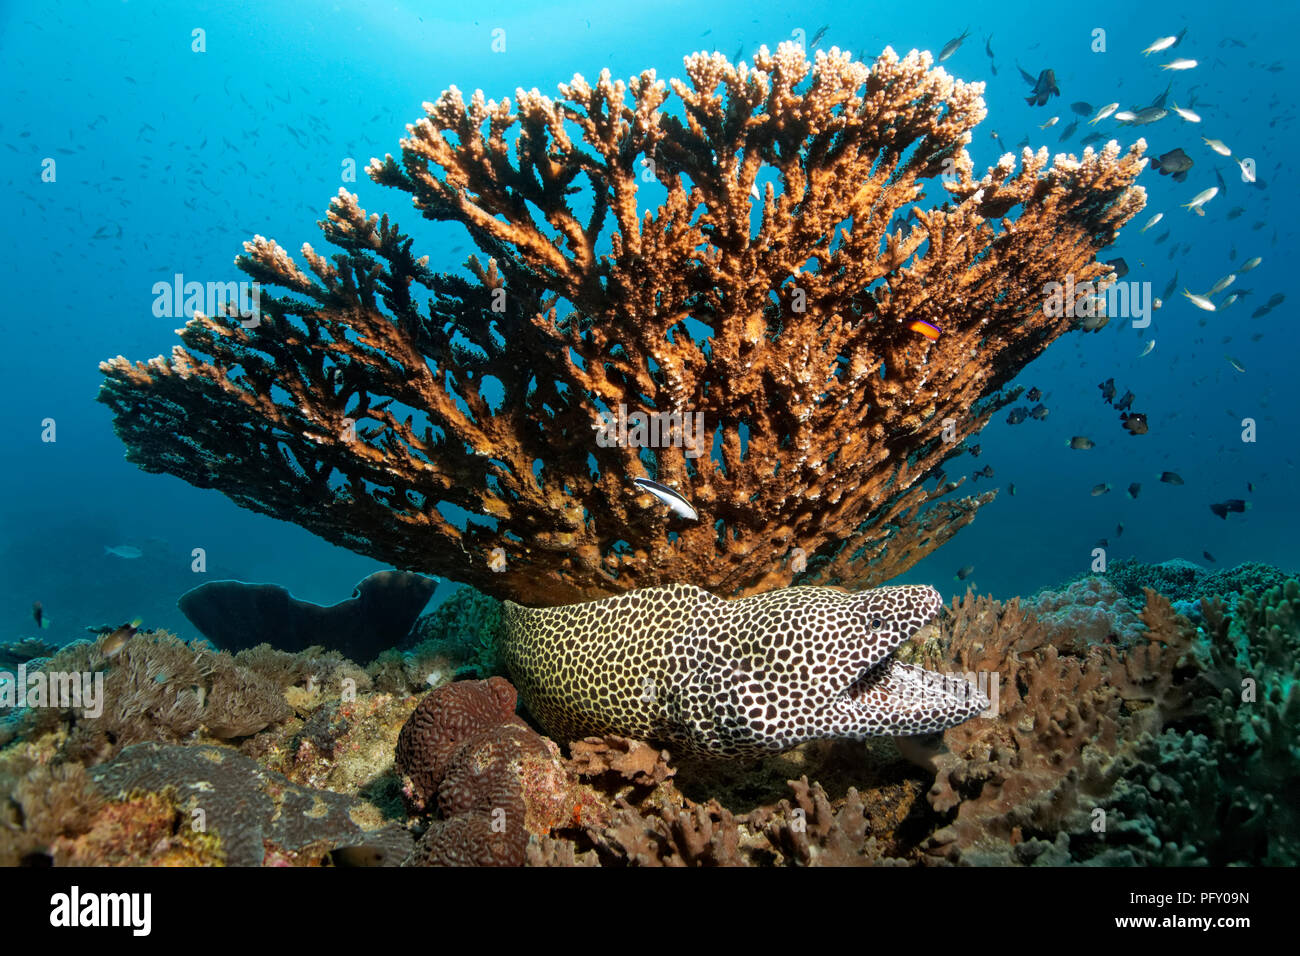 Gymnothorax favagineus Laced moray (), avec la bouche ouverte, en vertu de l'Agropora coral table (Acropora sp.), la nature des îles Daymaniyat Photo Stock